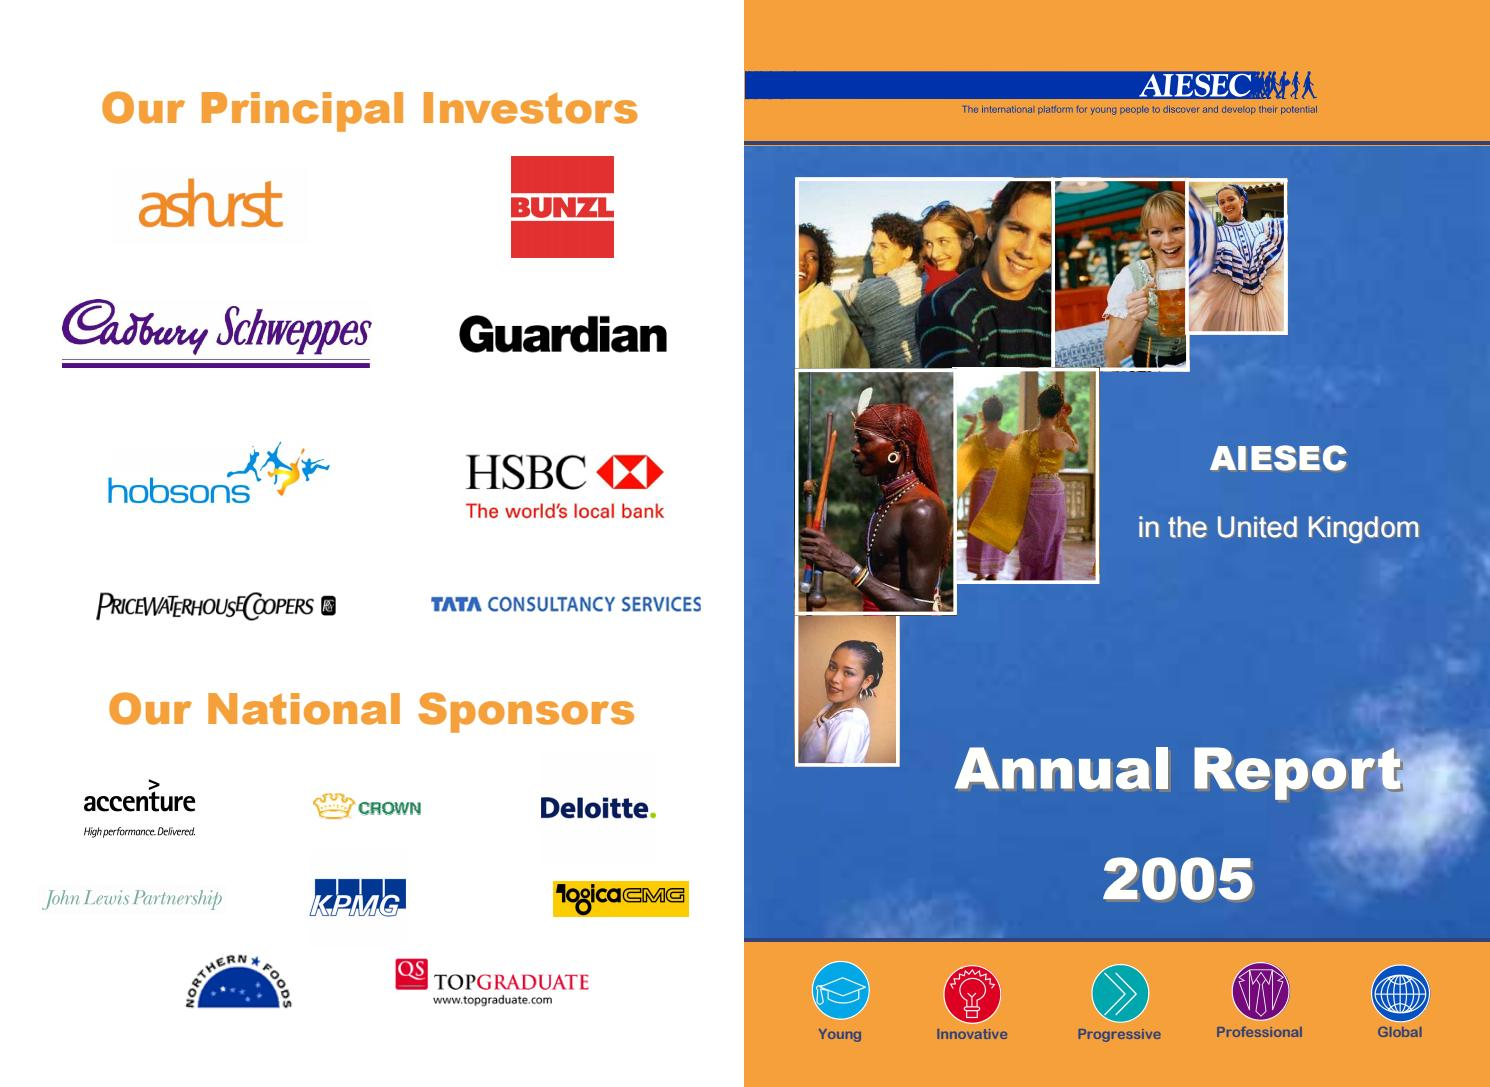 Aiesec Hannover aiesec uk annual report 04.05aiesec uk - issuu